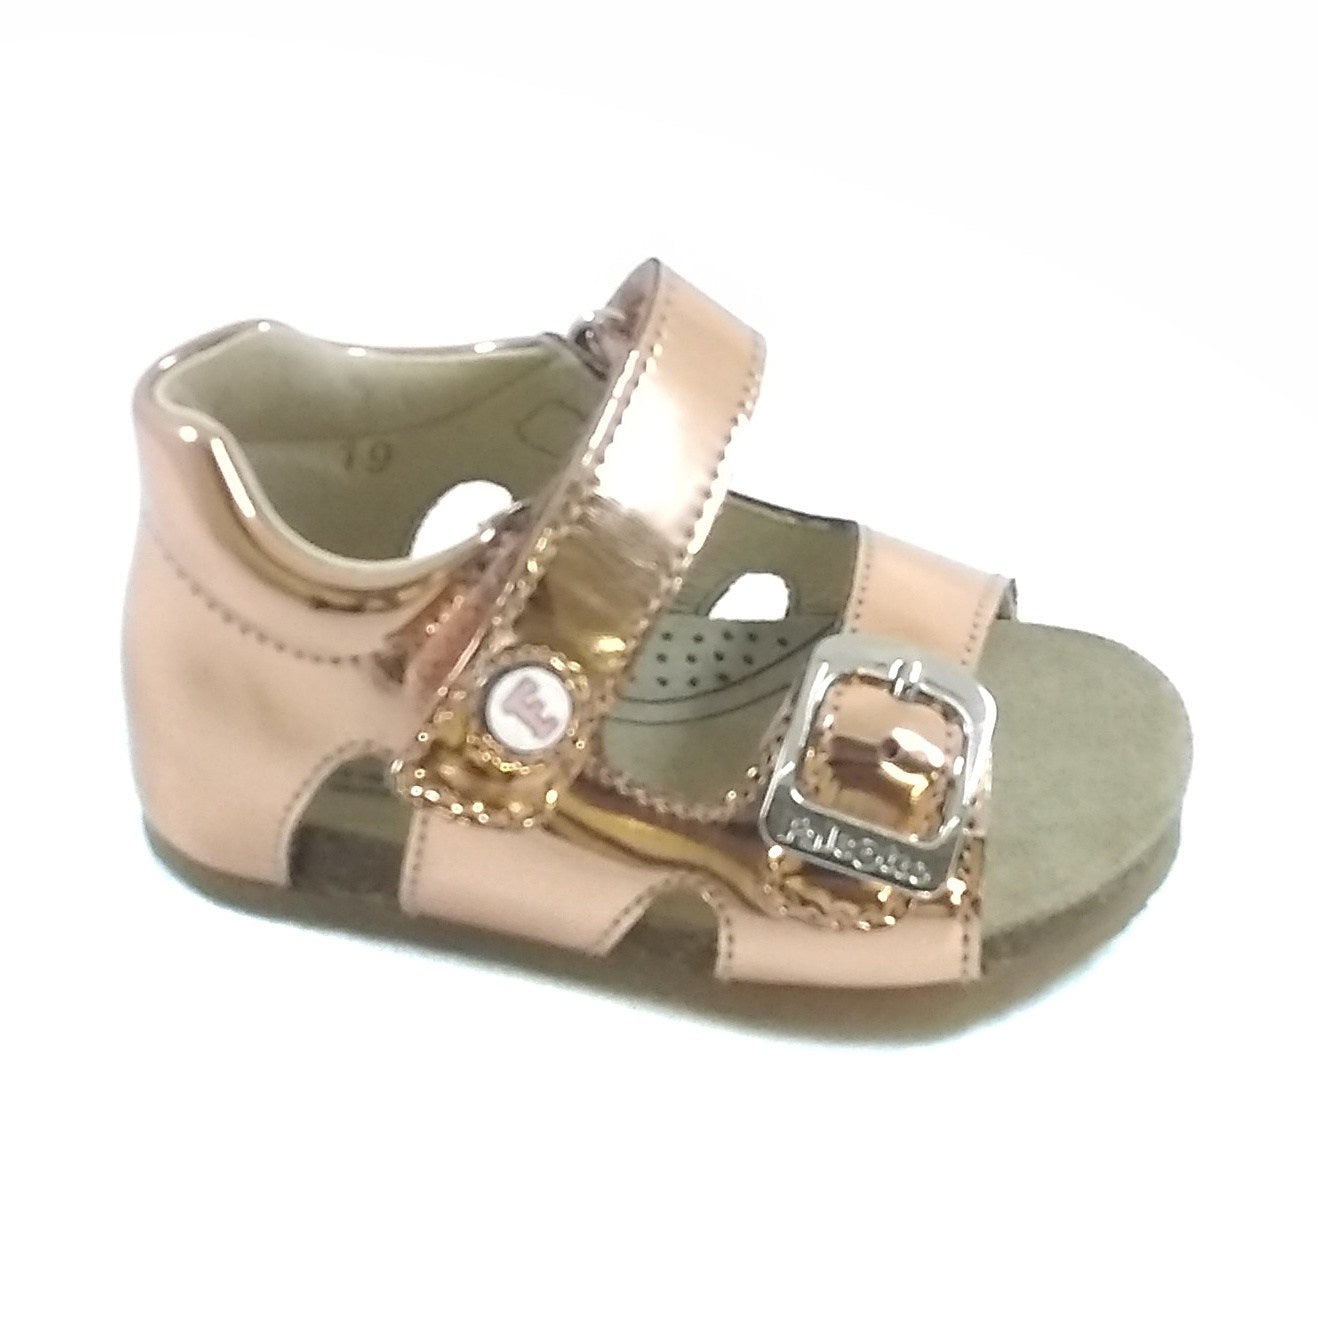 Falcotto Pink Sandal with Velcro and Buckle